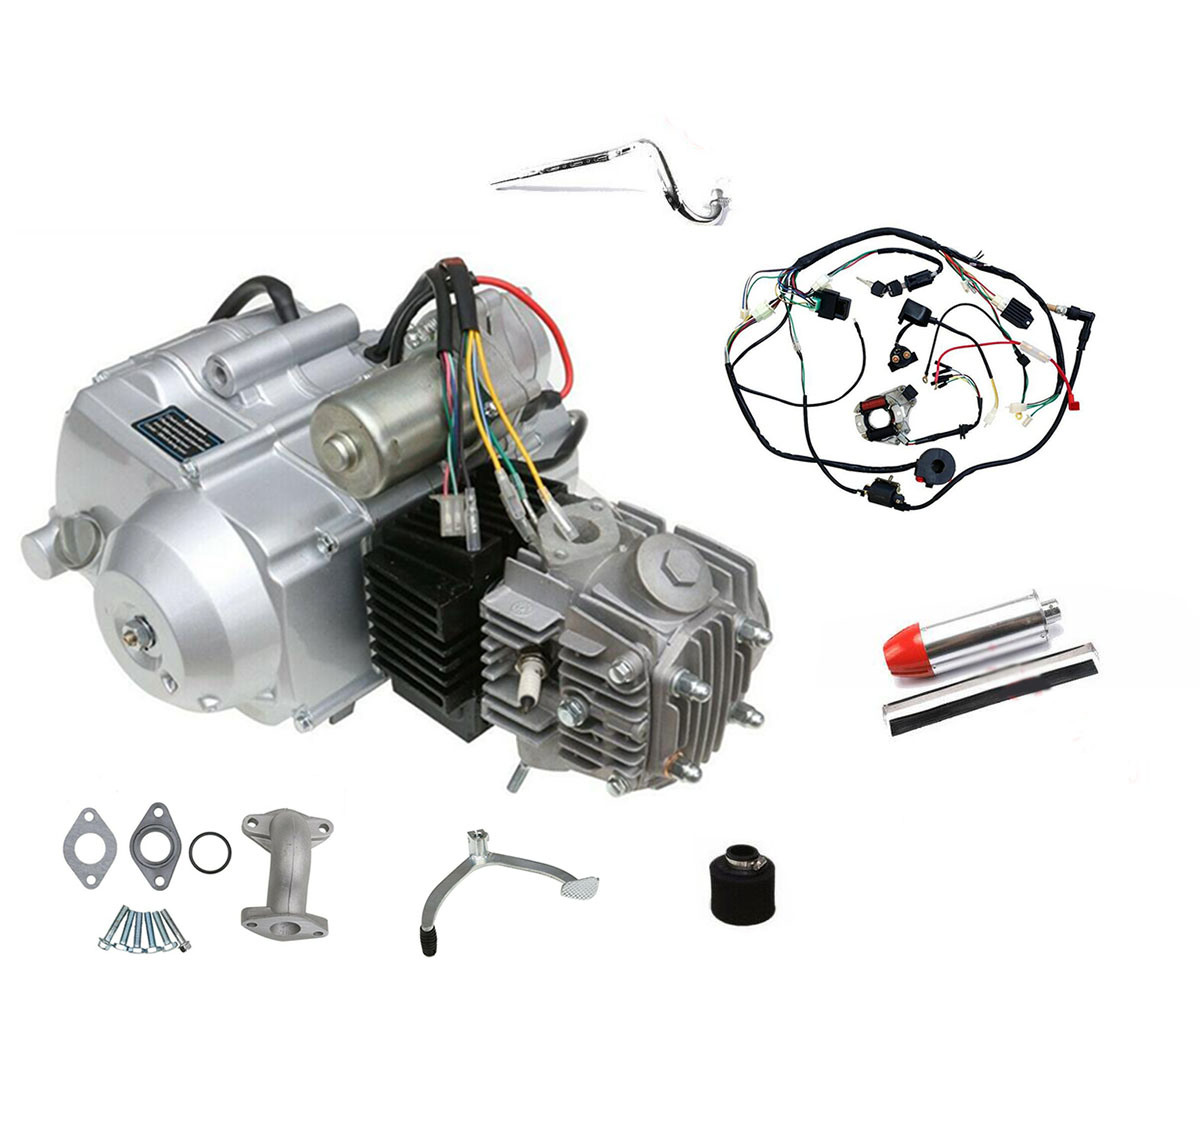 [Hot Item] 125cc Engine Kits Air Cooled 4 Stroke Engine Wiring Harness 3  Speed Reverse for ATV Quad Go Kart